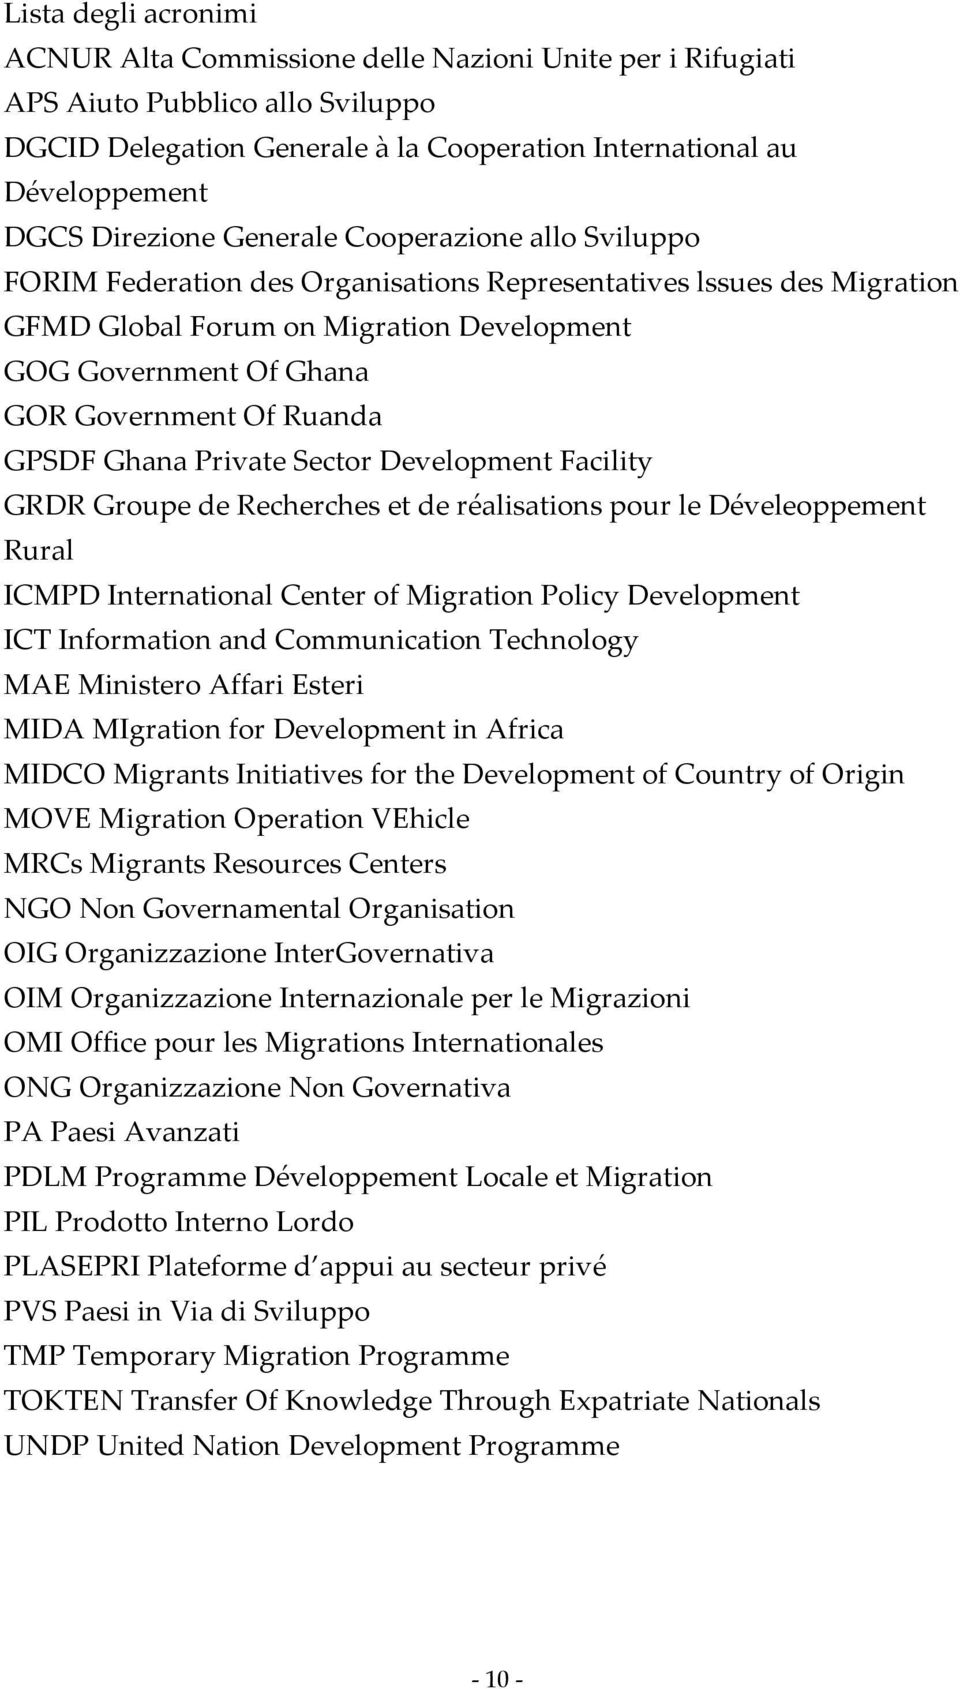 Of Ruanda GPSDF Ghana Private Sector Development Facility GRDR Groupe de Recherches et de réalisations pour le Déveleoppement Rural ICMPD International Center of Migration Policy Development ICT